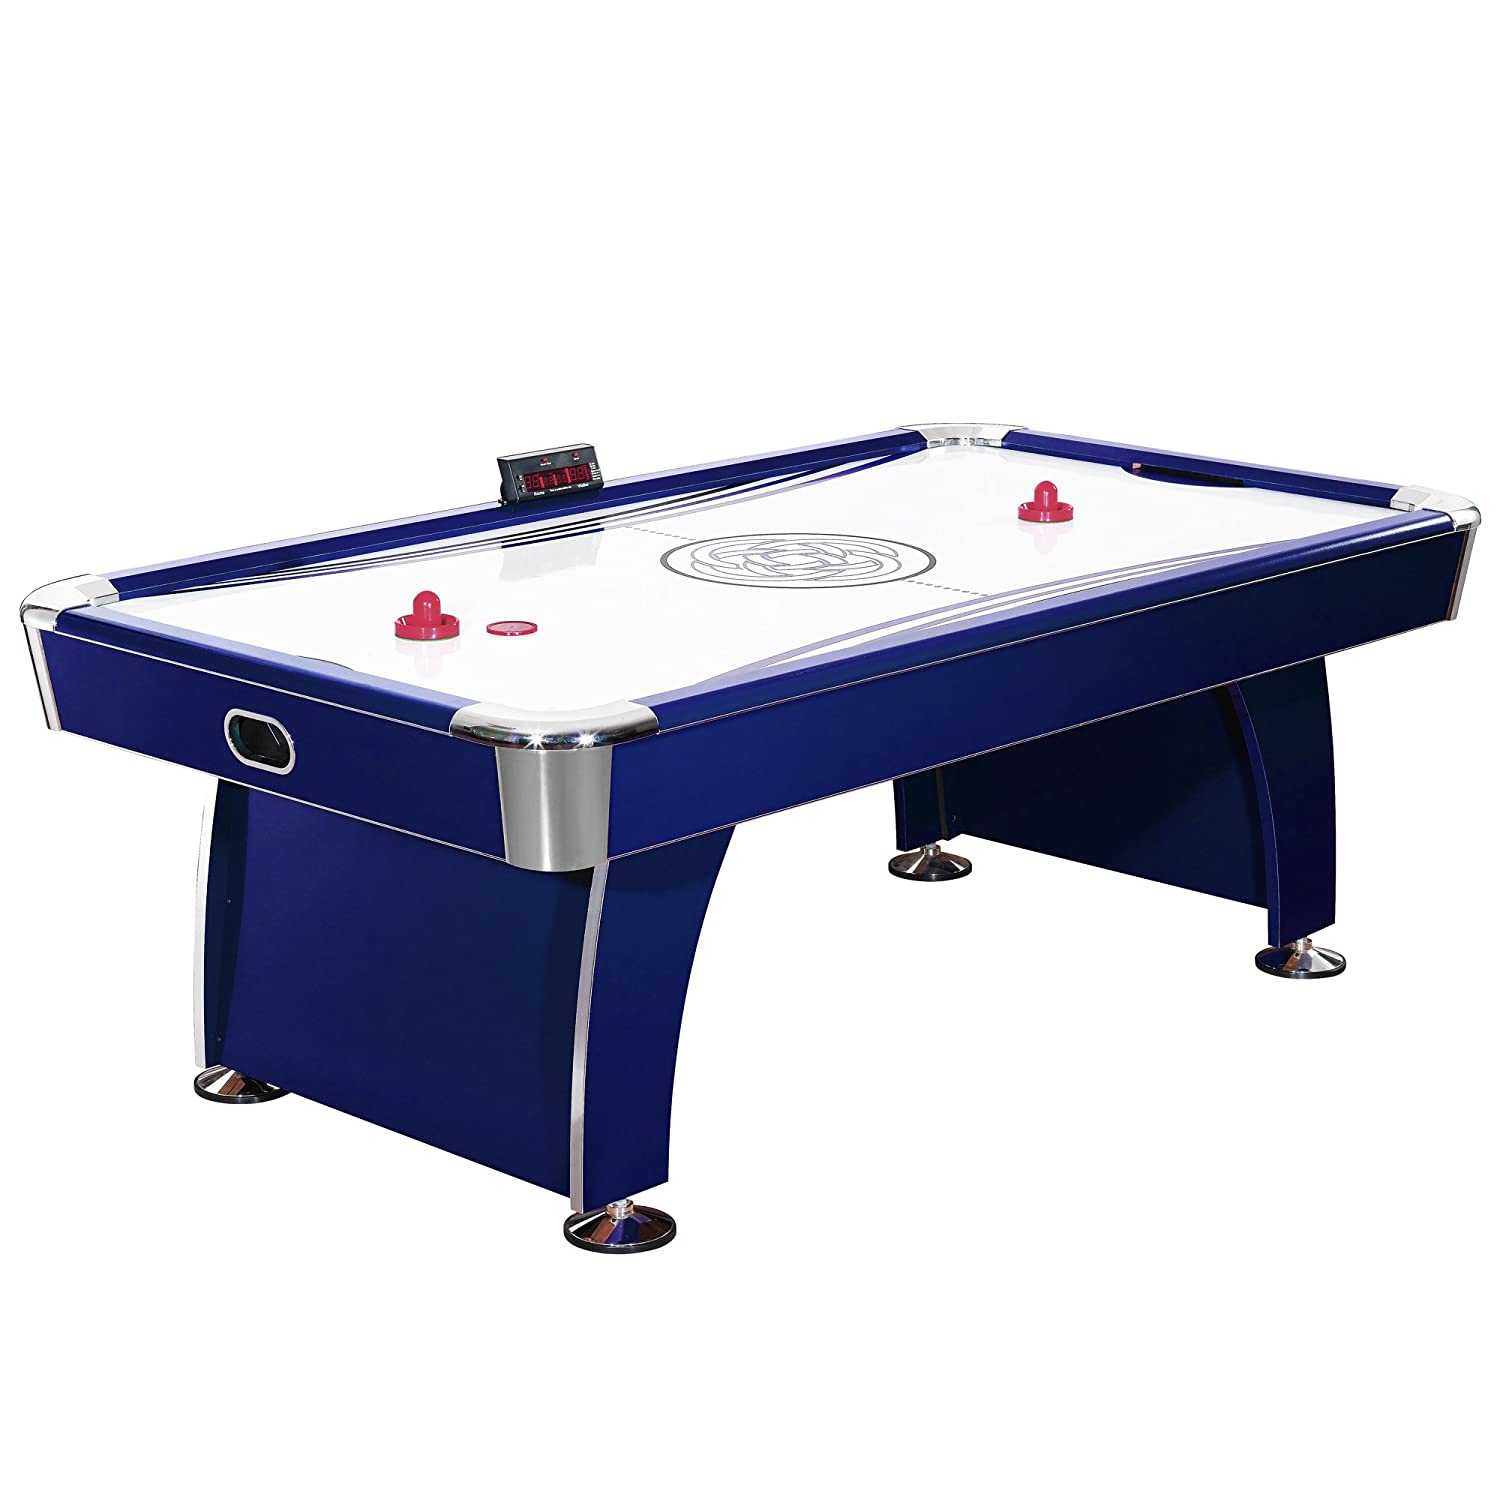 Hathaway Phantom 7.5-Foot Air Hockey Game Table for Kids and Adults, with Electronic Scoring